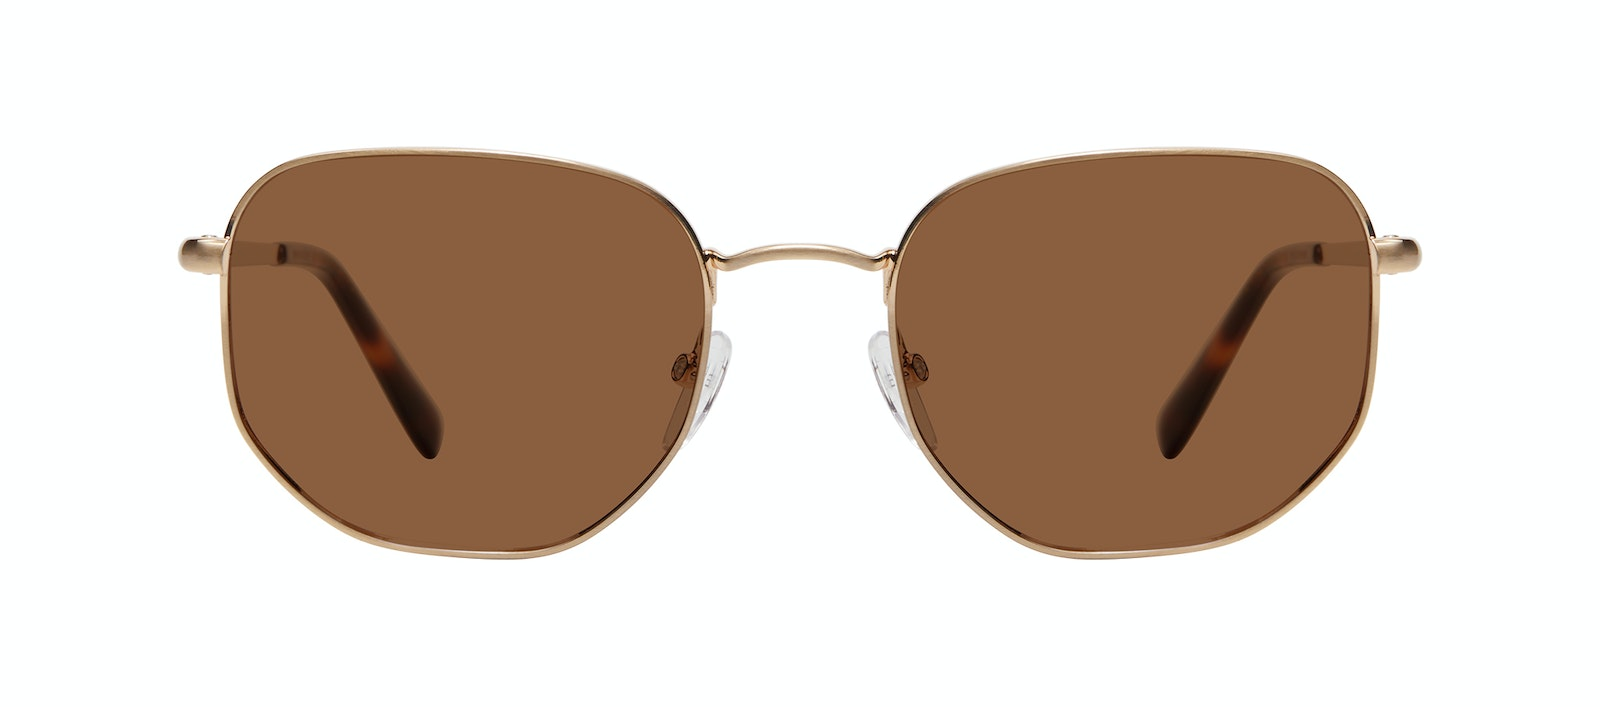 Affordable Fashion Glasses Square Sunglasses Men Global M Matte Gold Front